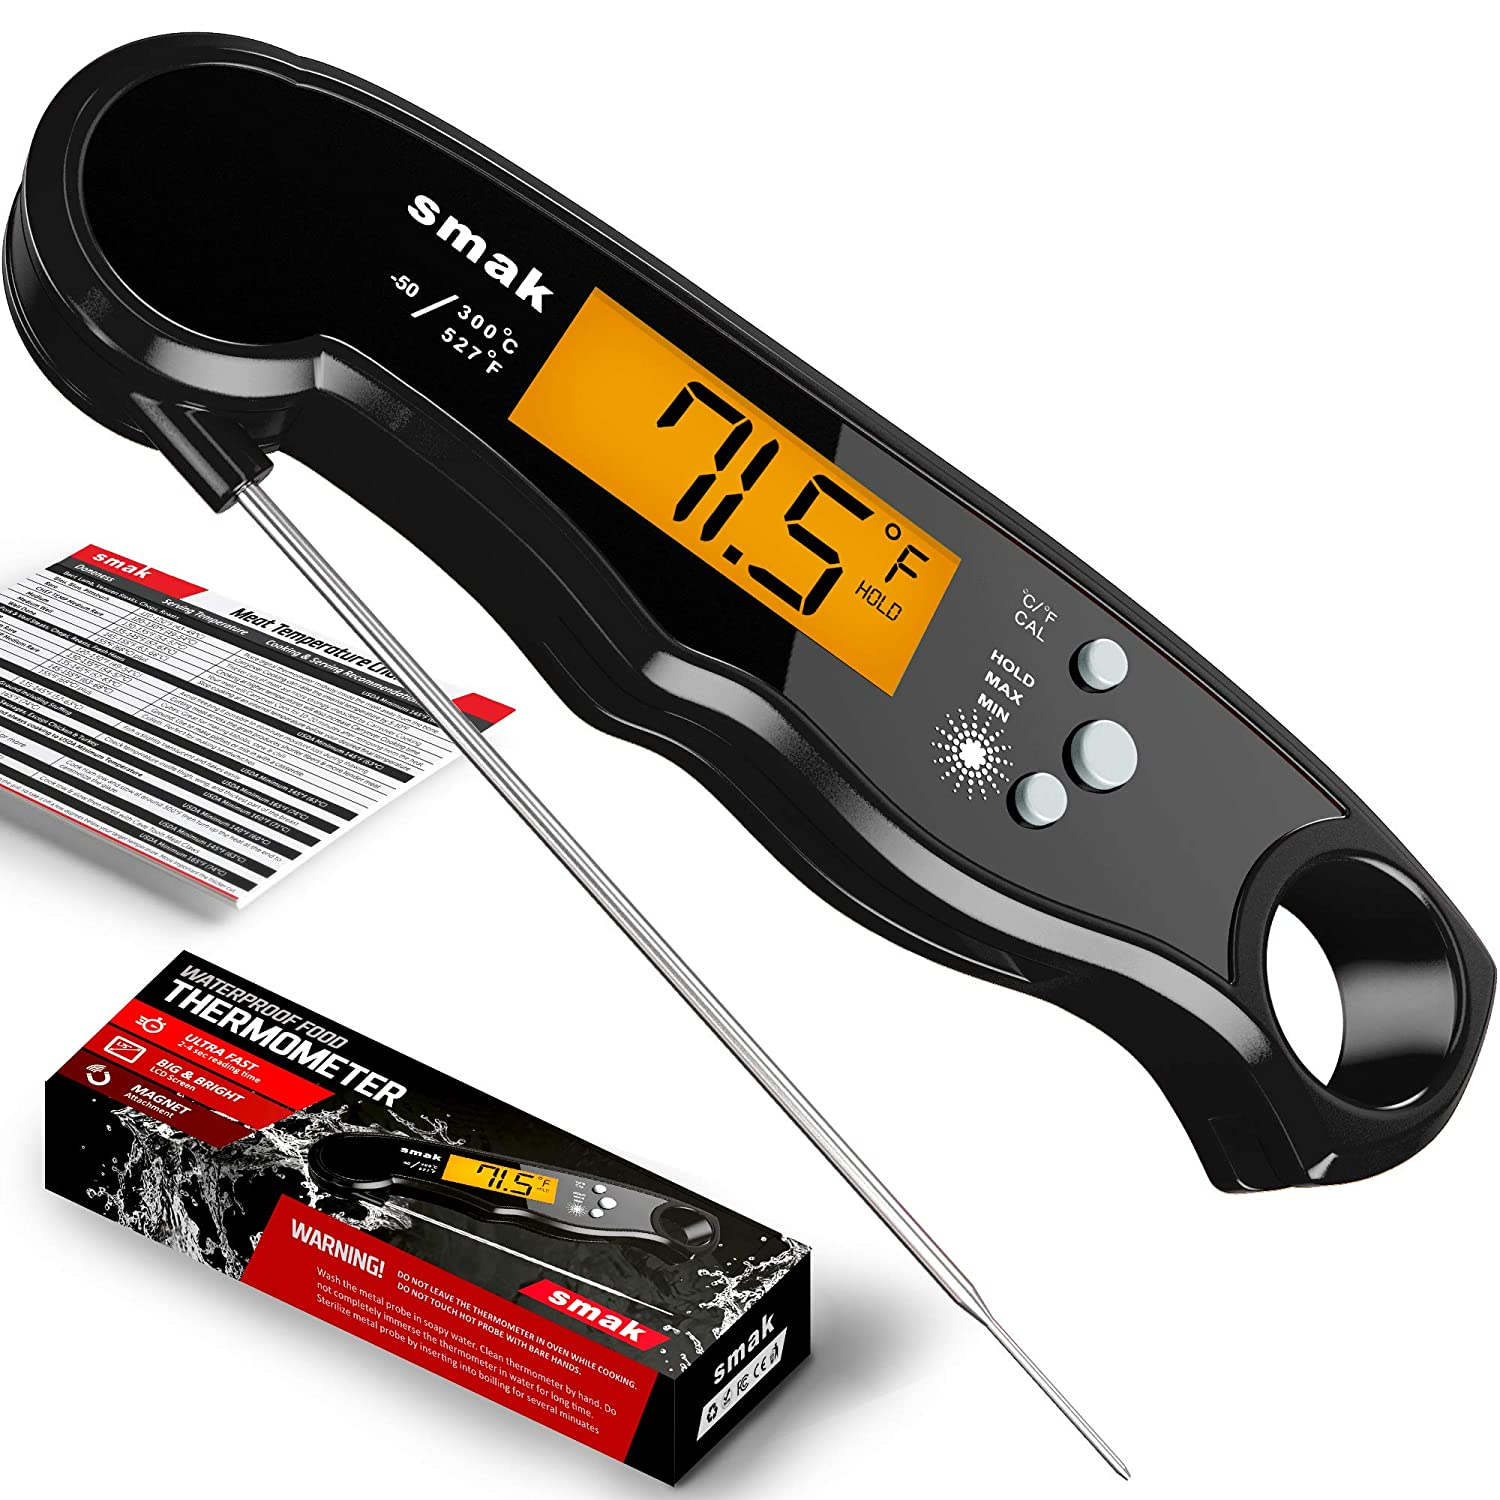 Wireless LCD Remote Thermometer For BBQ Grill Meat Kitchen Oven Food Cook#OZZ